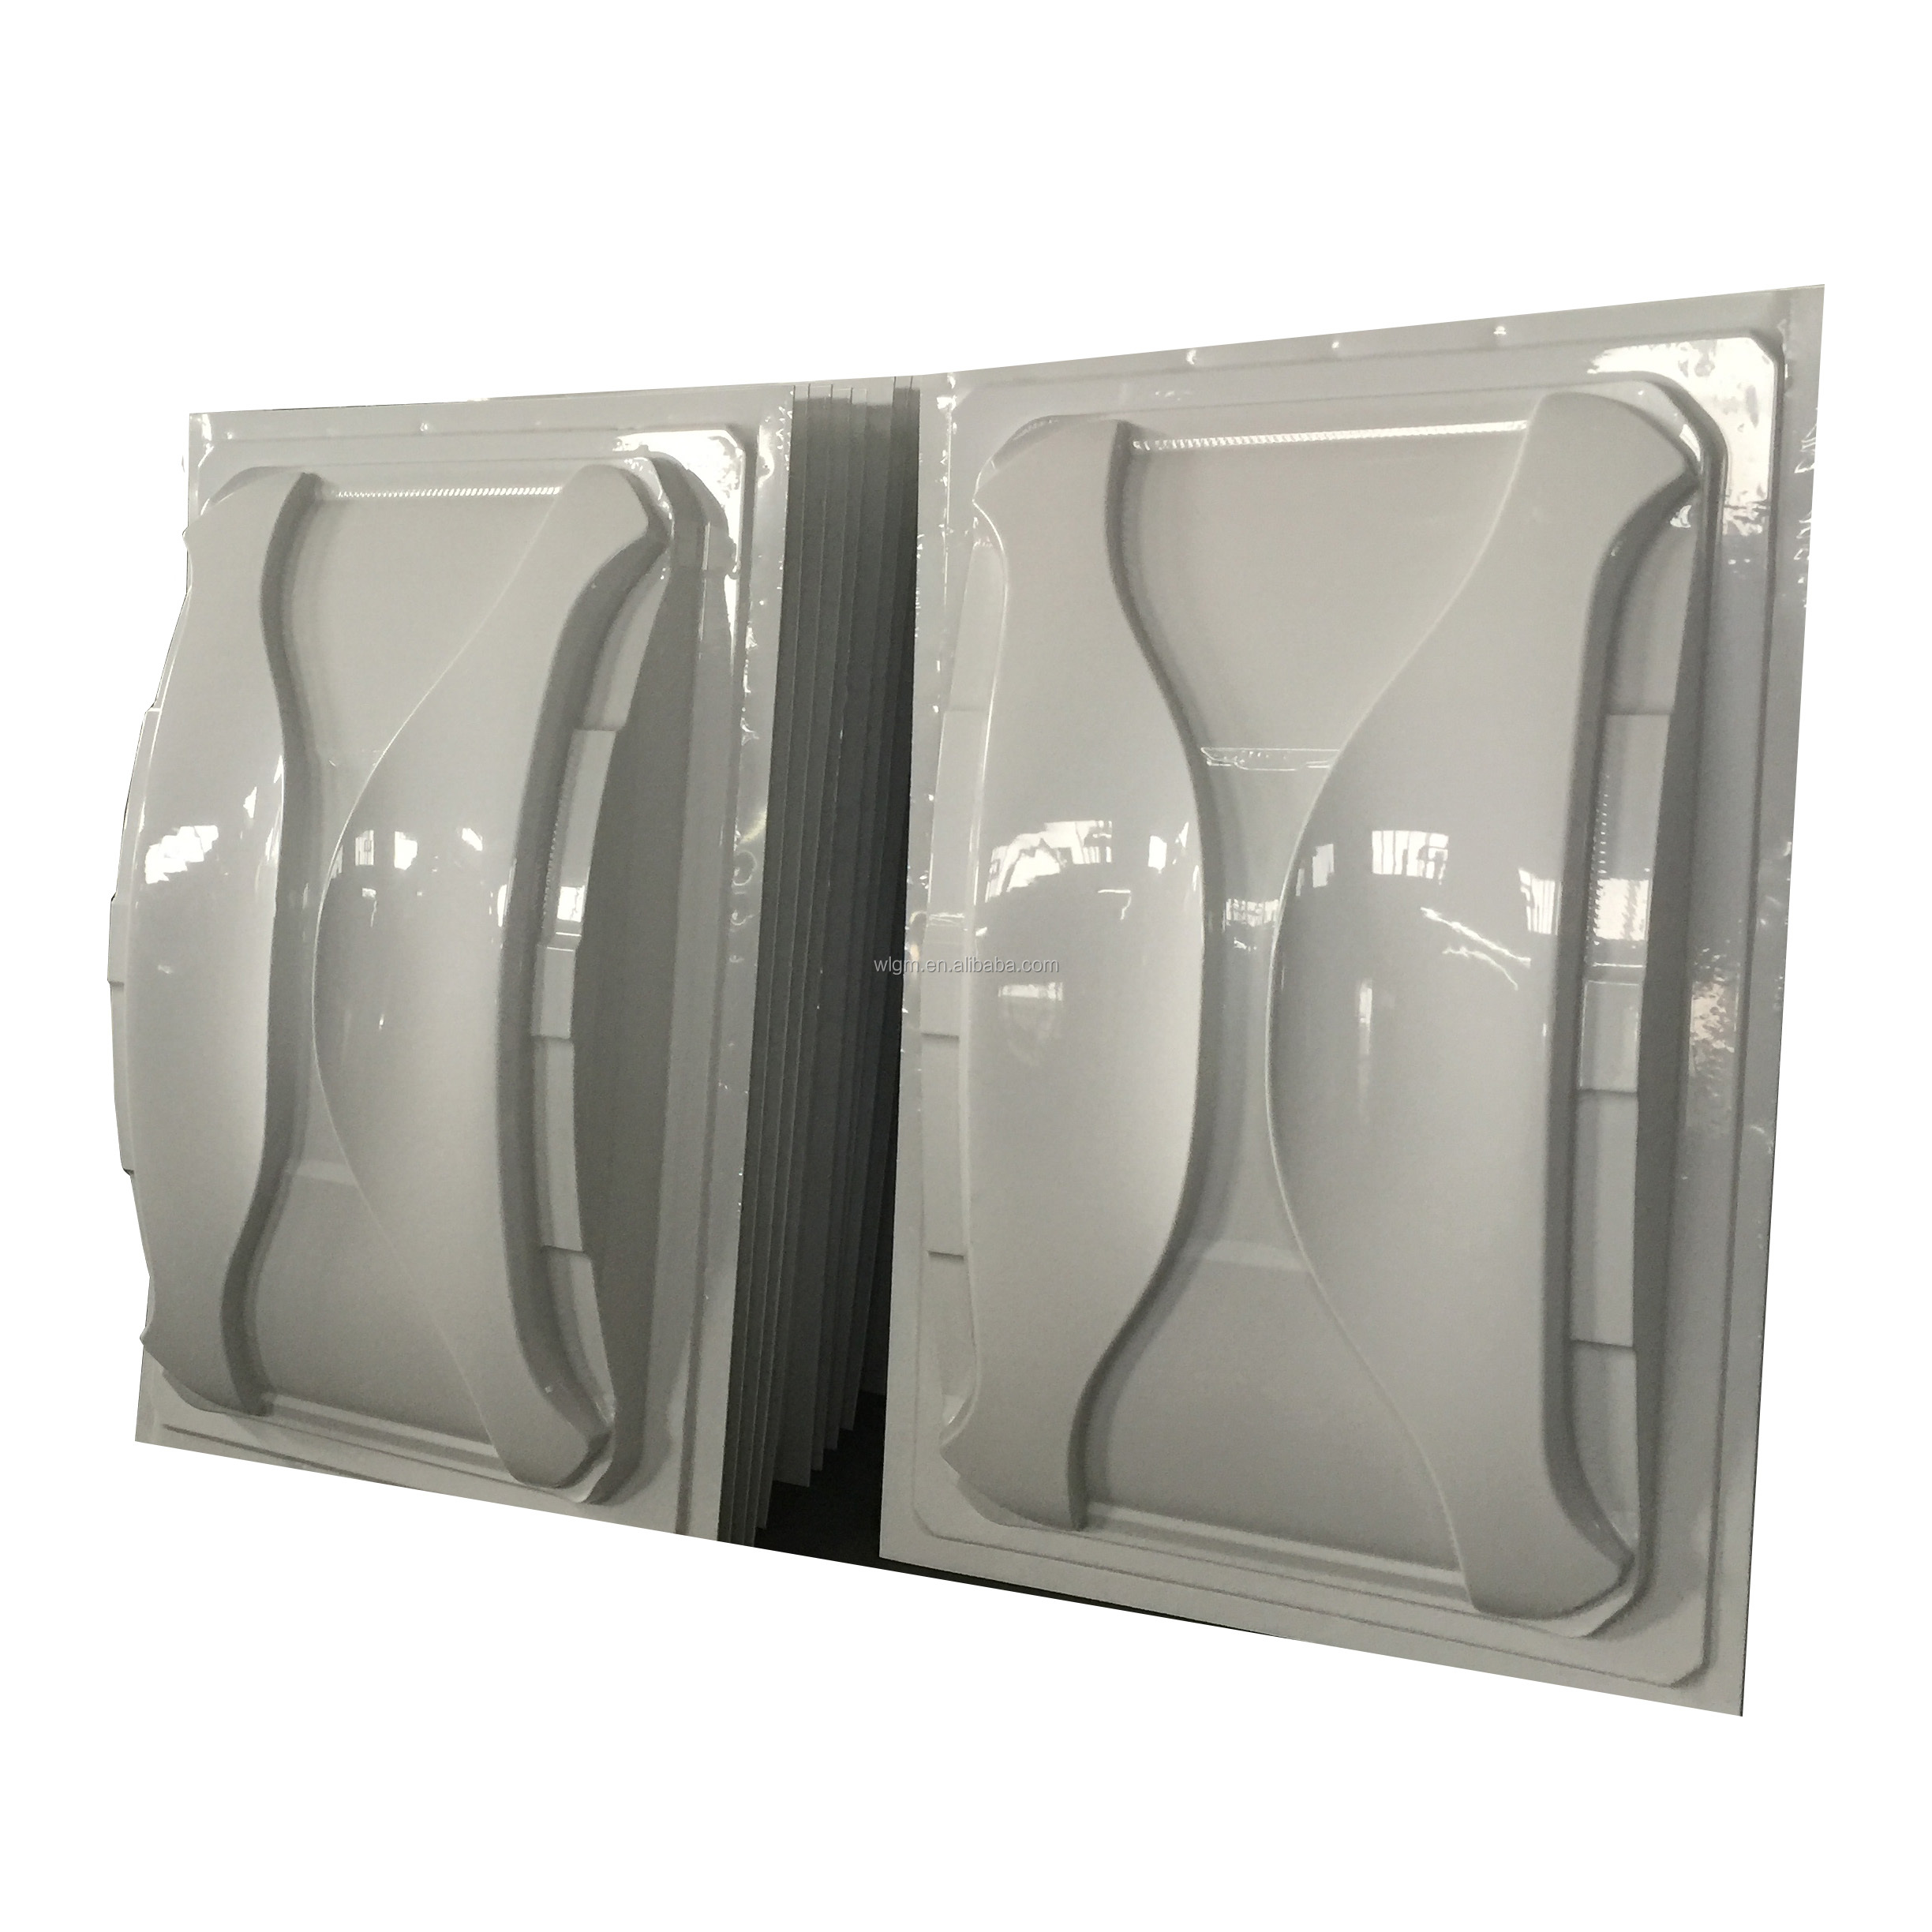 vacuum forming products car accessories auto parts export abs custom plastic moulds thermoforming process manufacturer